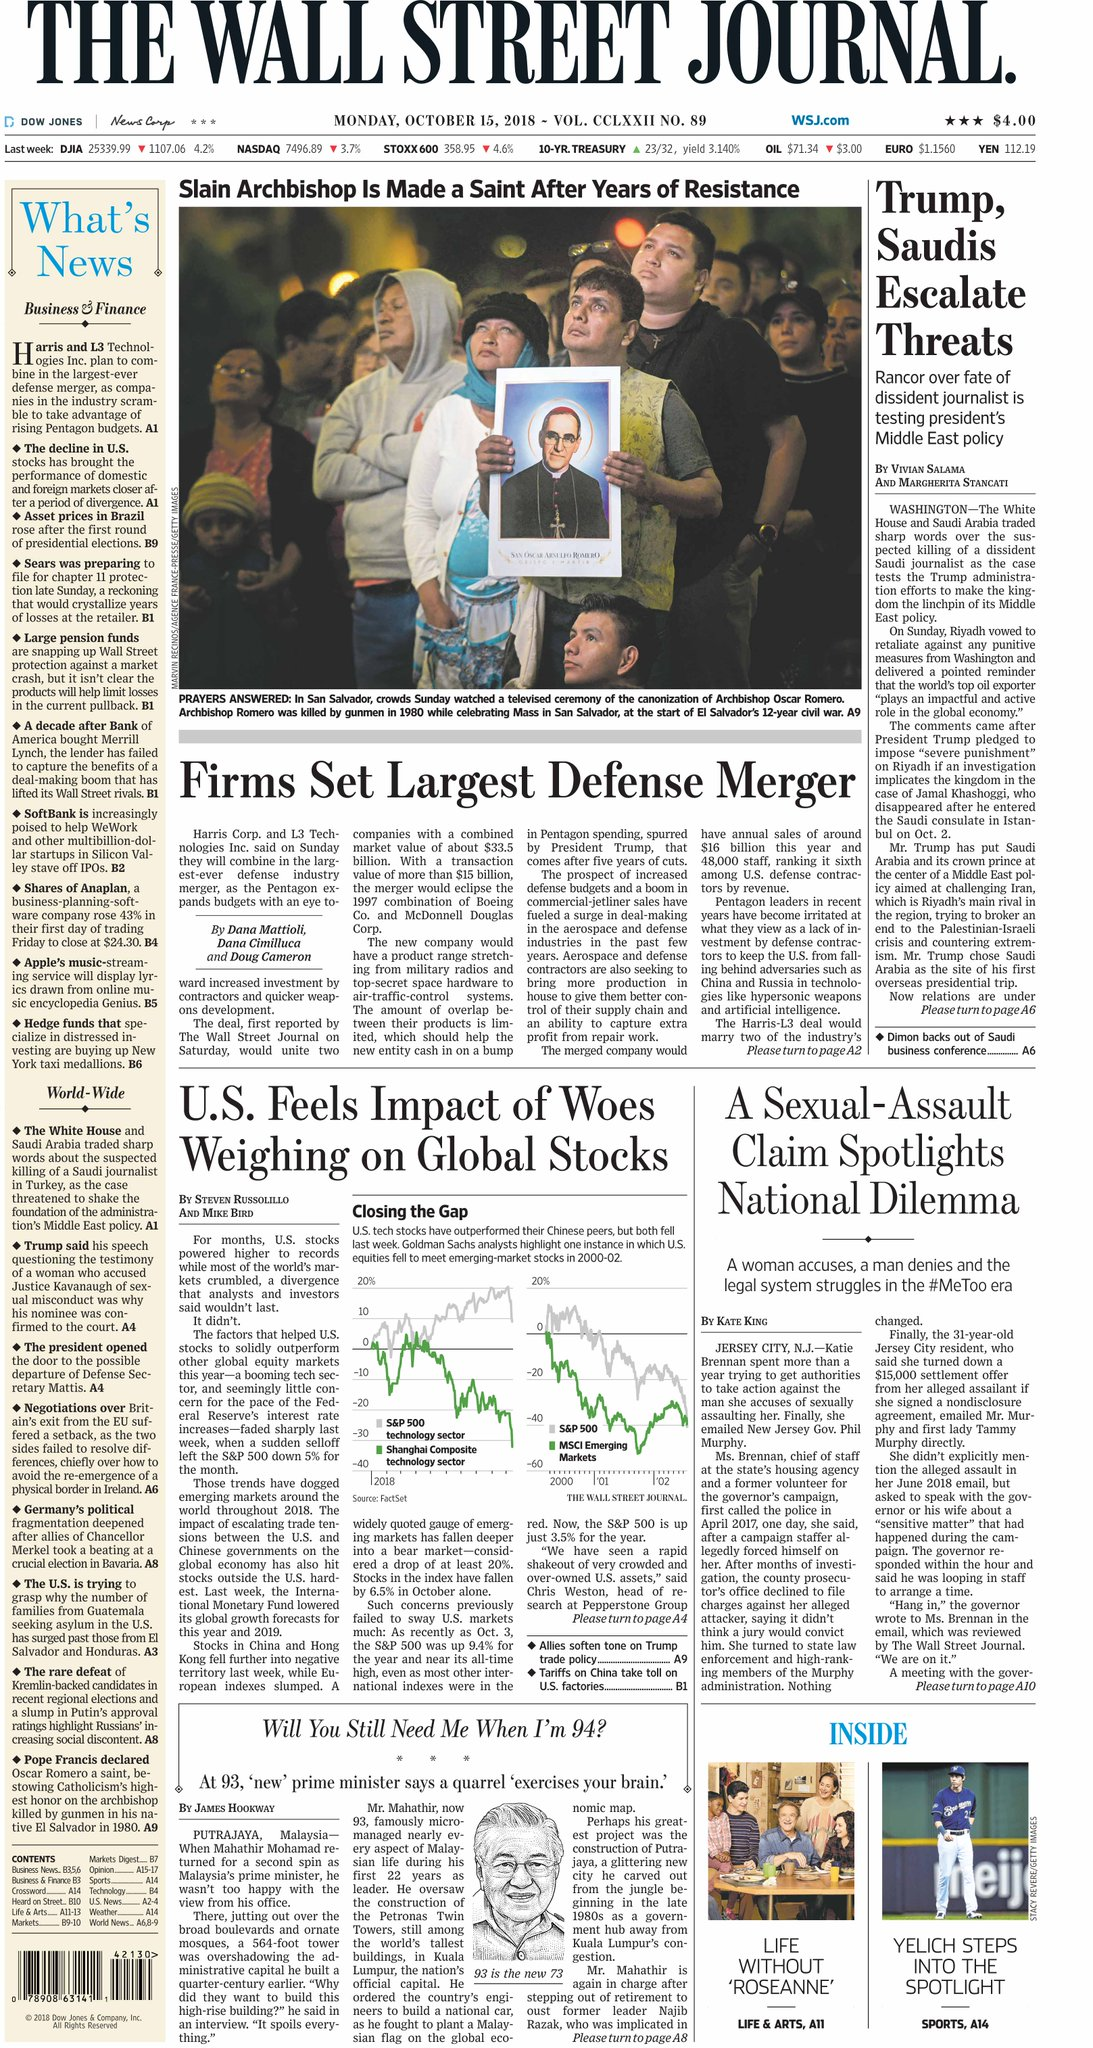 Take an early look at the front page of The Wall Street Journal https://t.co/5xQPDPcm8q https://t.co/8Kbmr4raZk